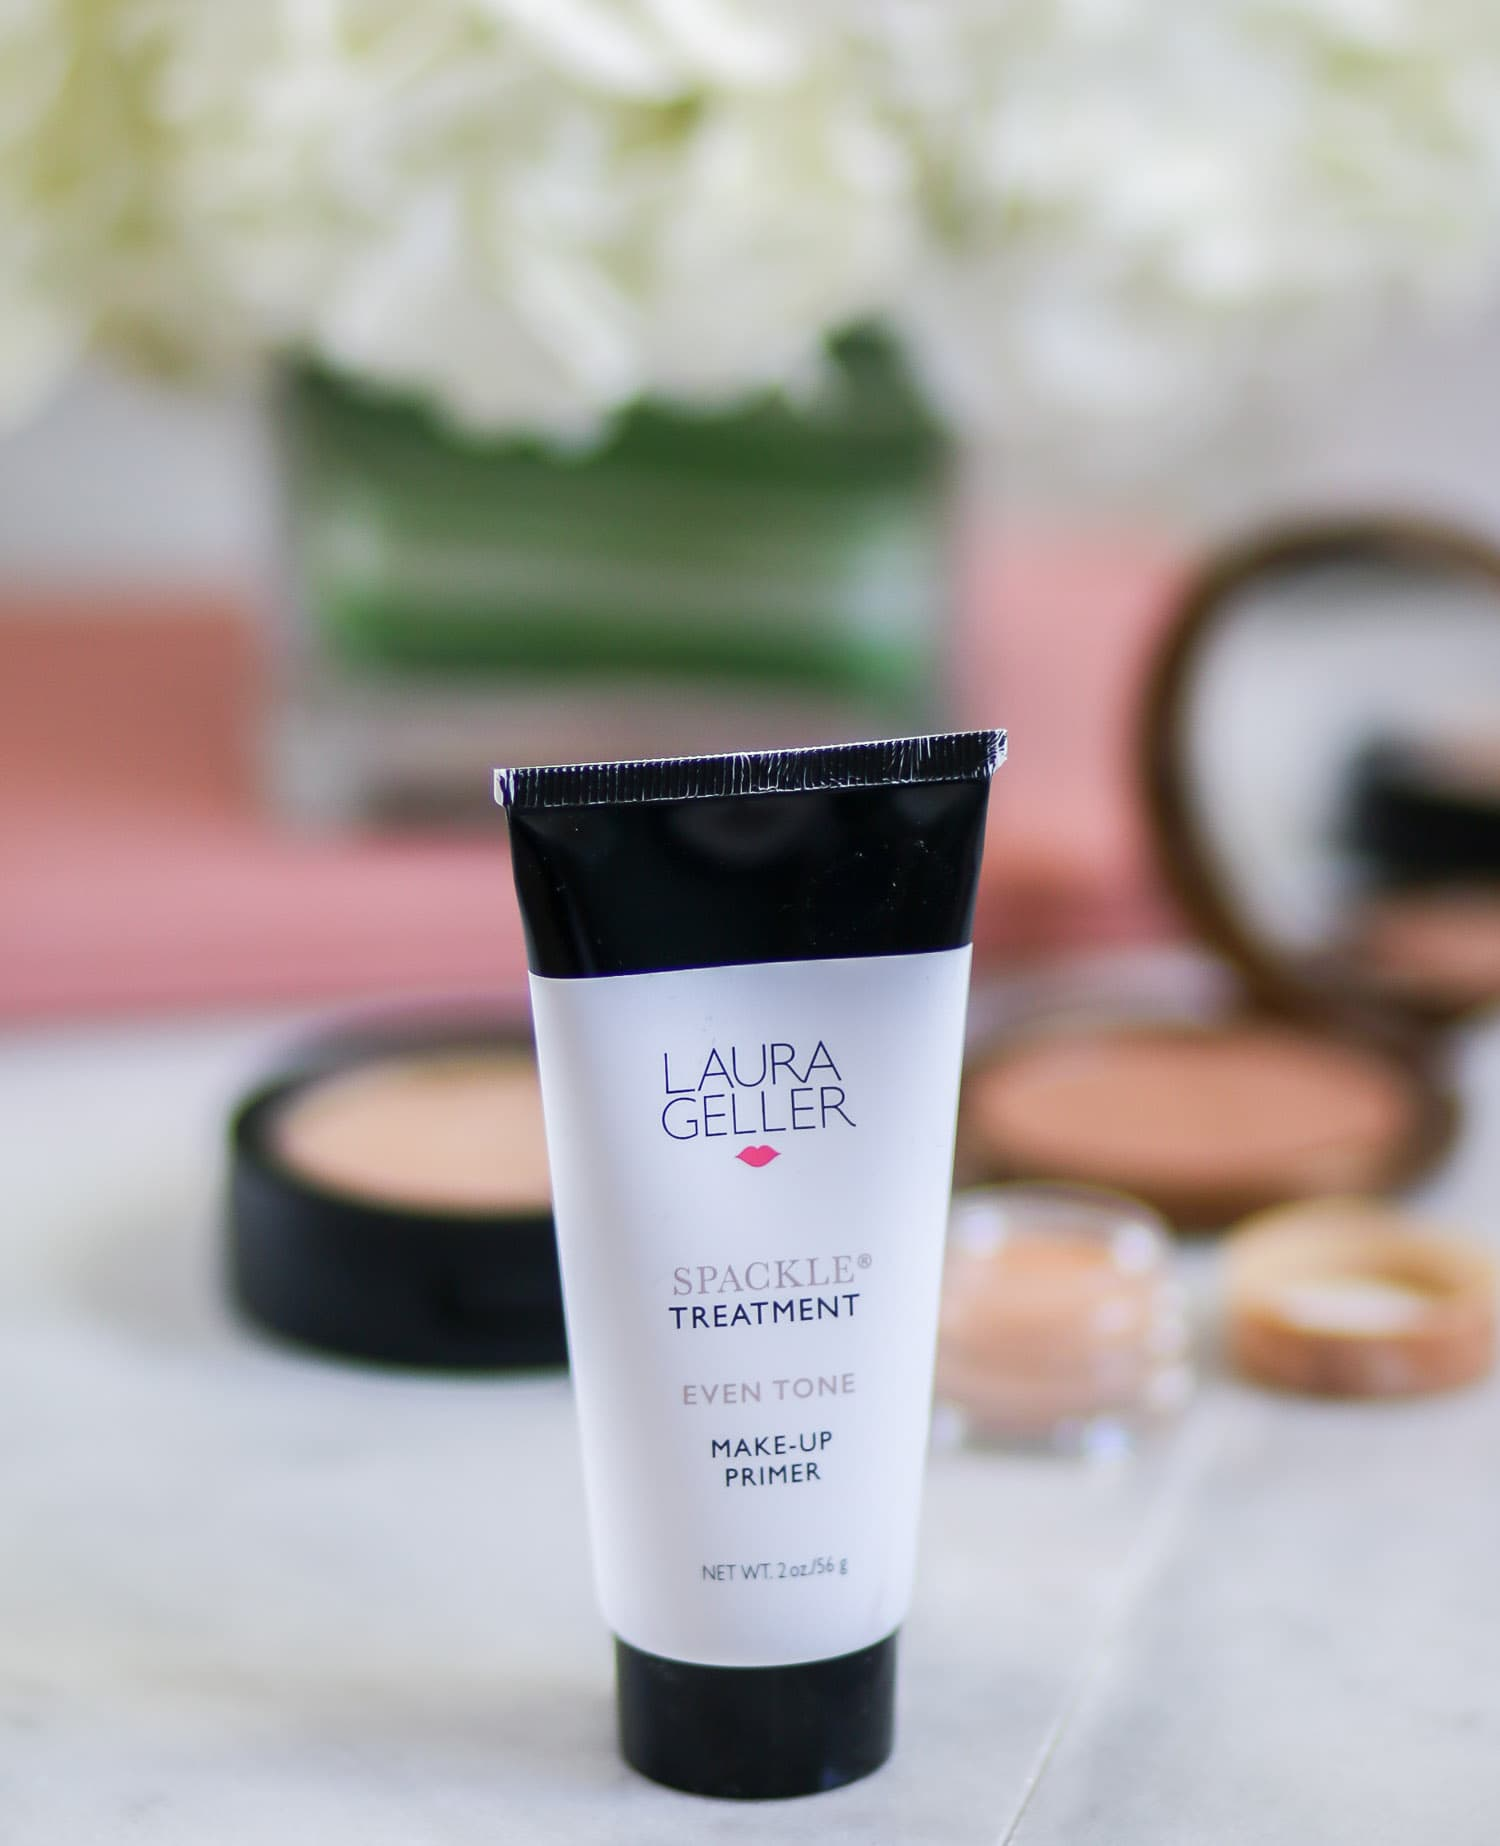 The Laura Geller Kle Treatment Even Tone Makeup Primer Is One Of Best Primers I